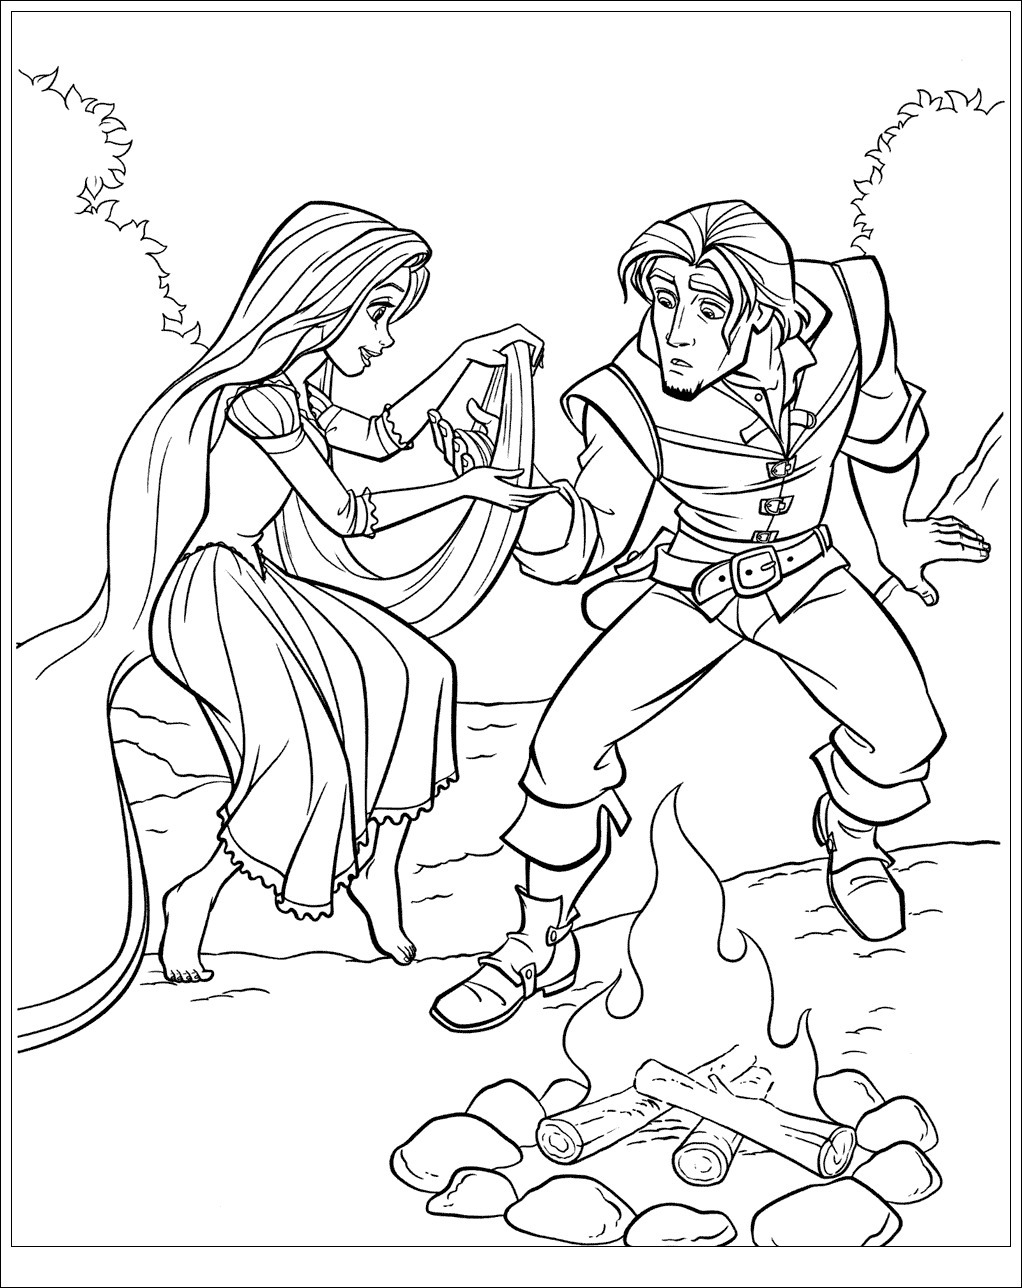 Rapunzel gives Flynn first aid Coloring Page